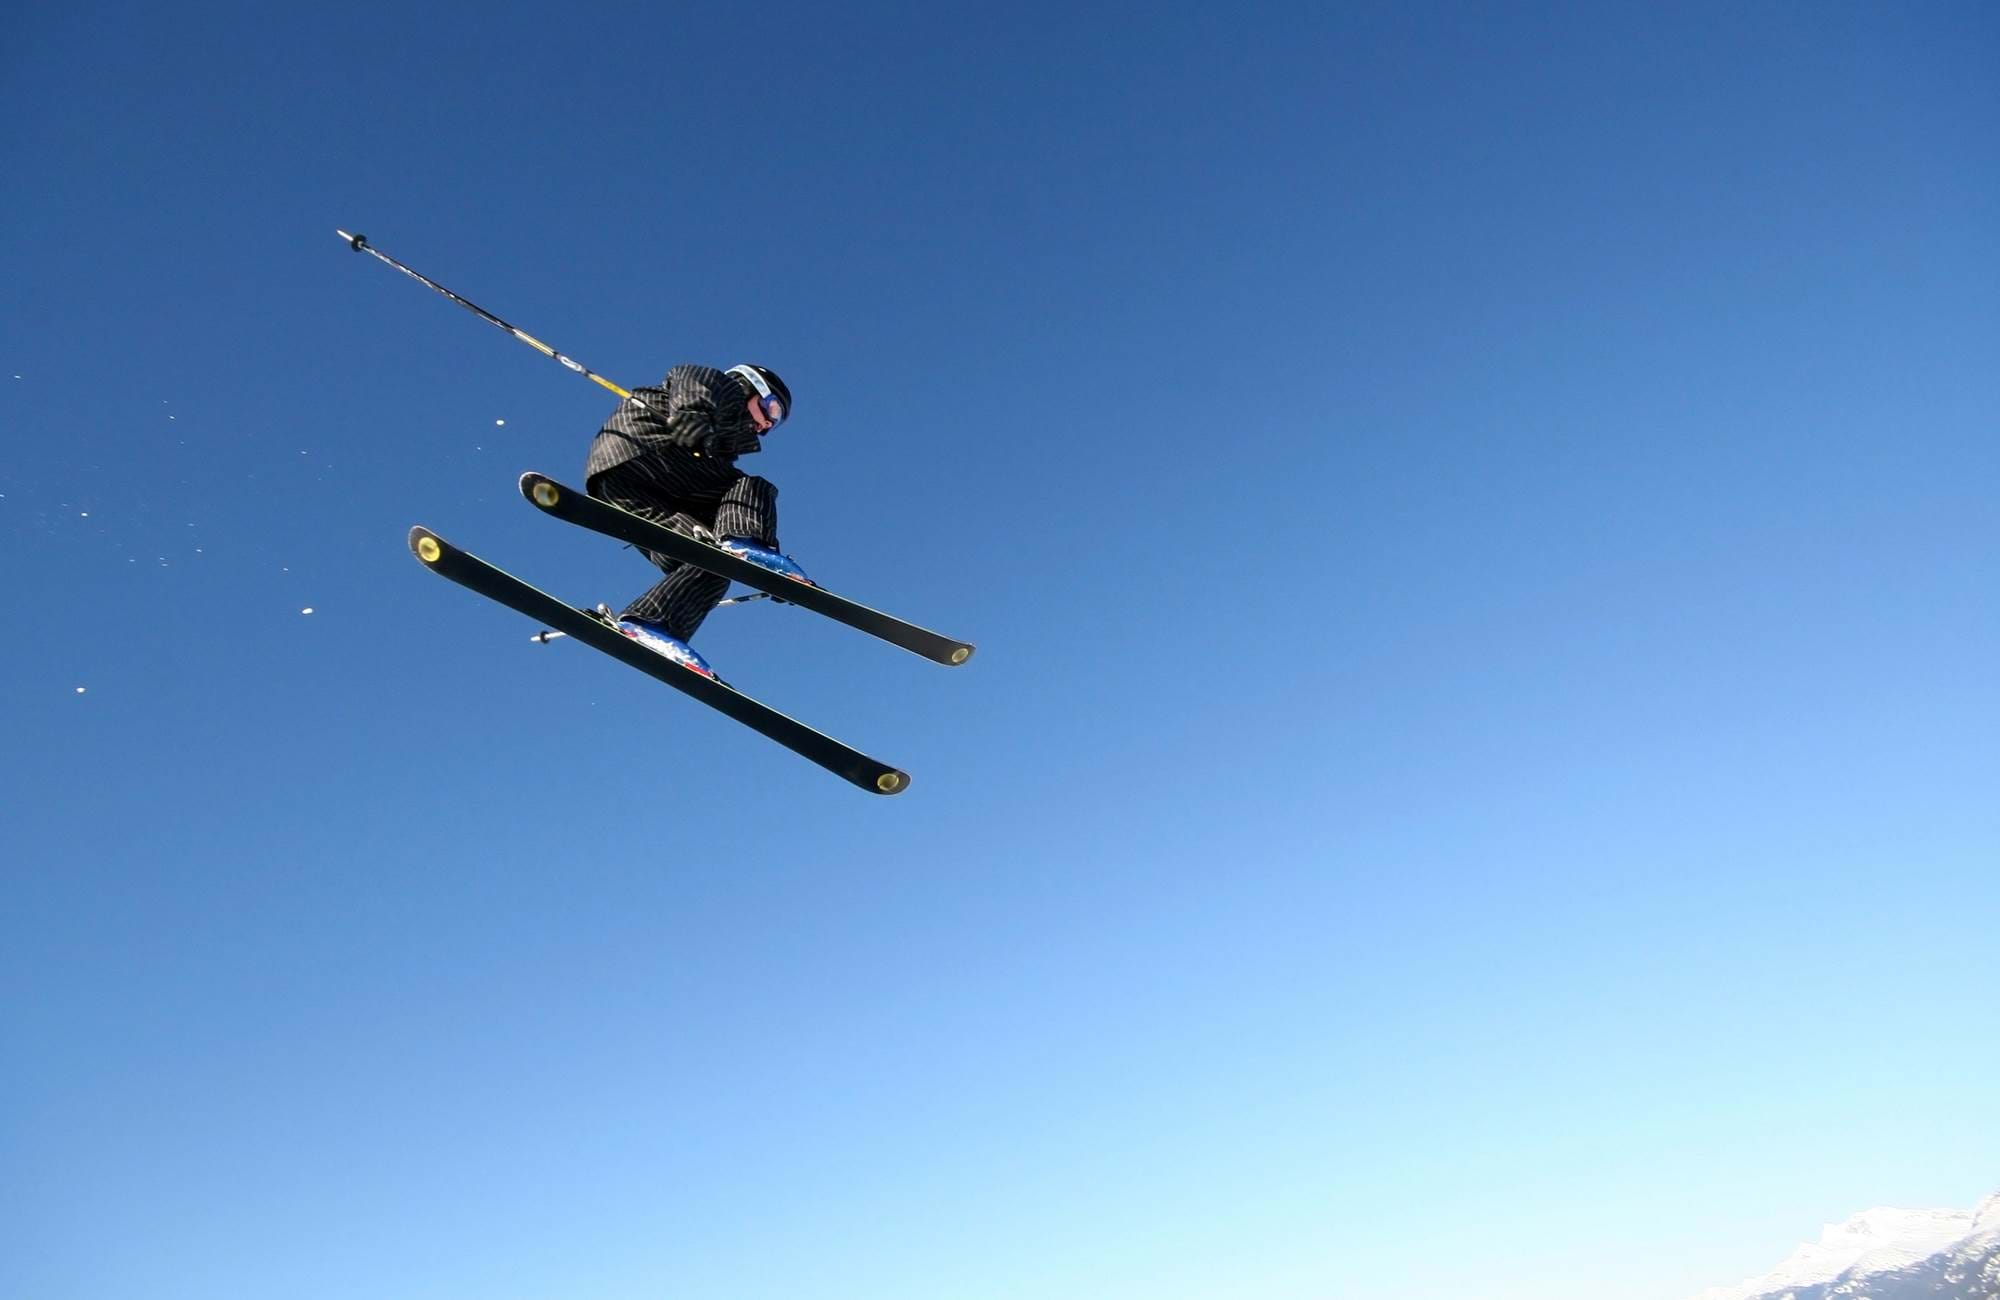 skiier flying up in the air in Canada near Kamloops